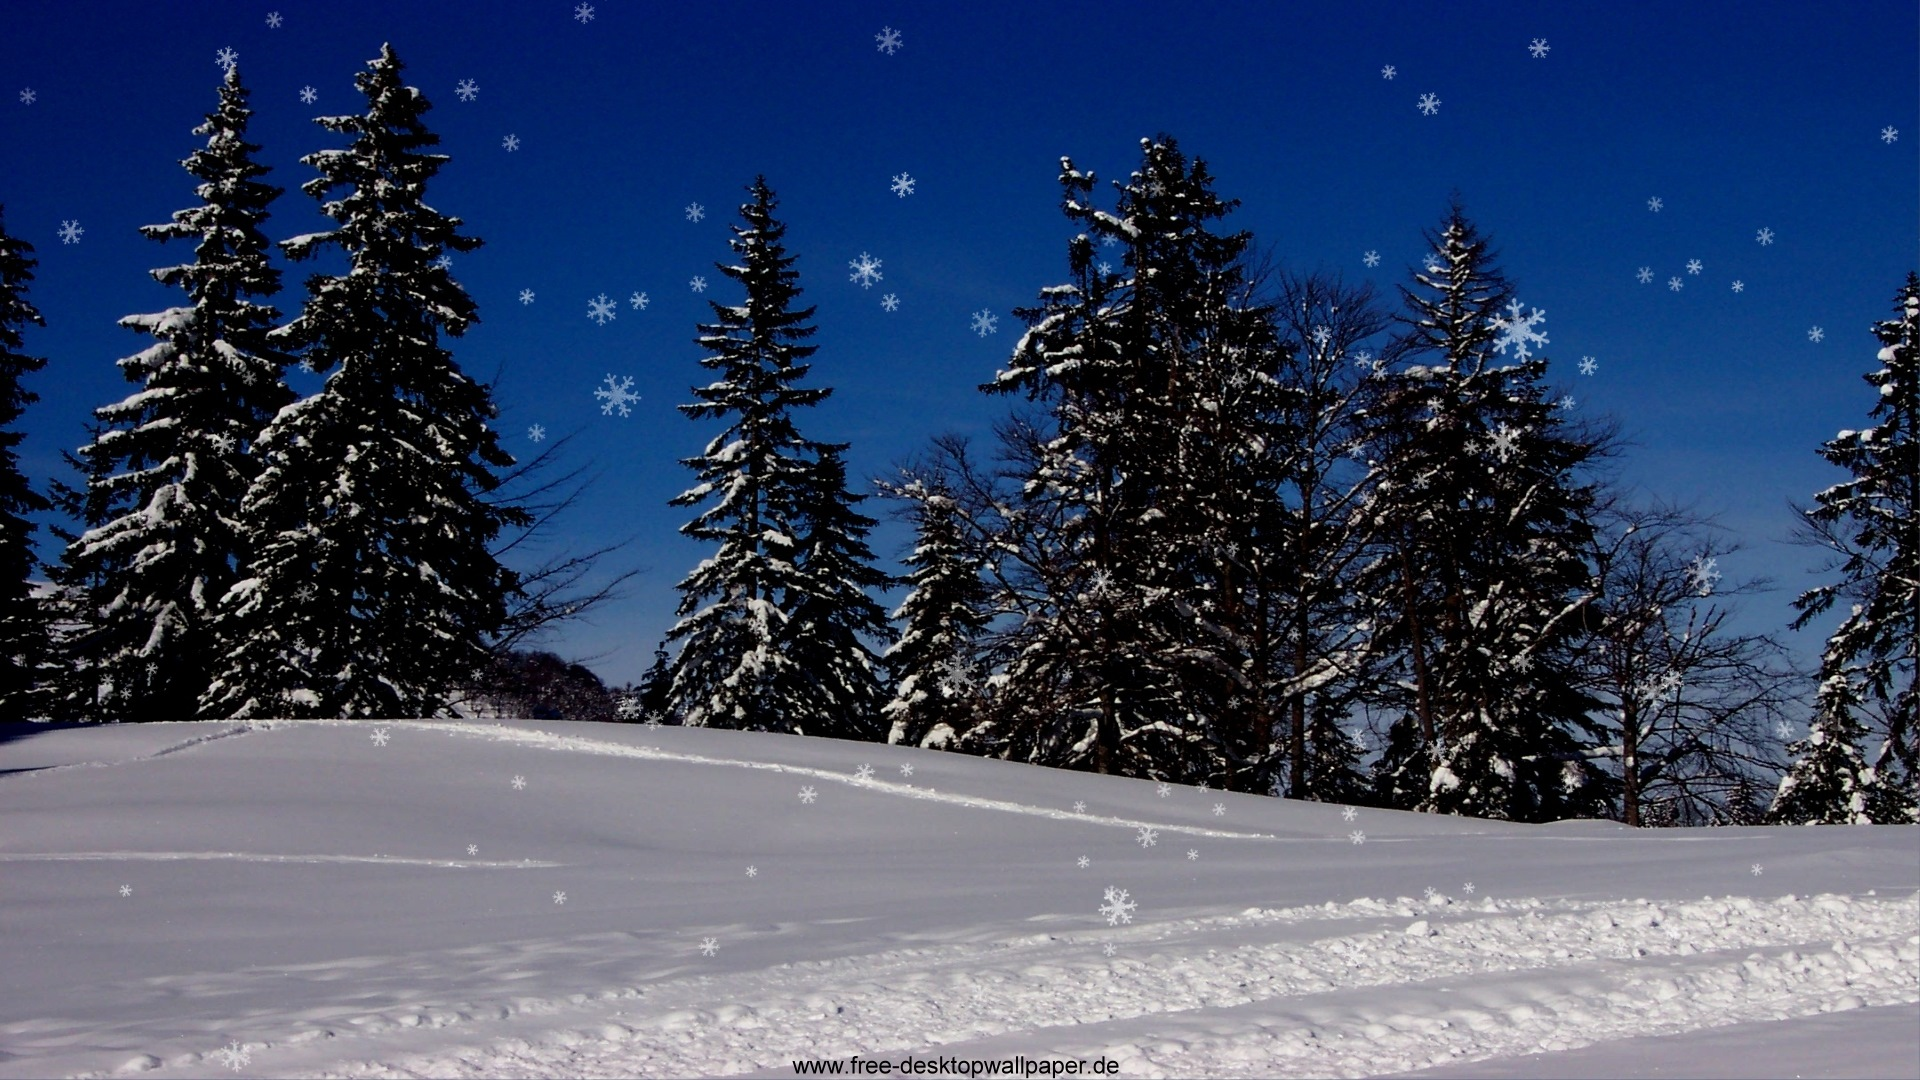 snow christmas wallpaper - wallpapersafari